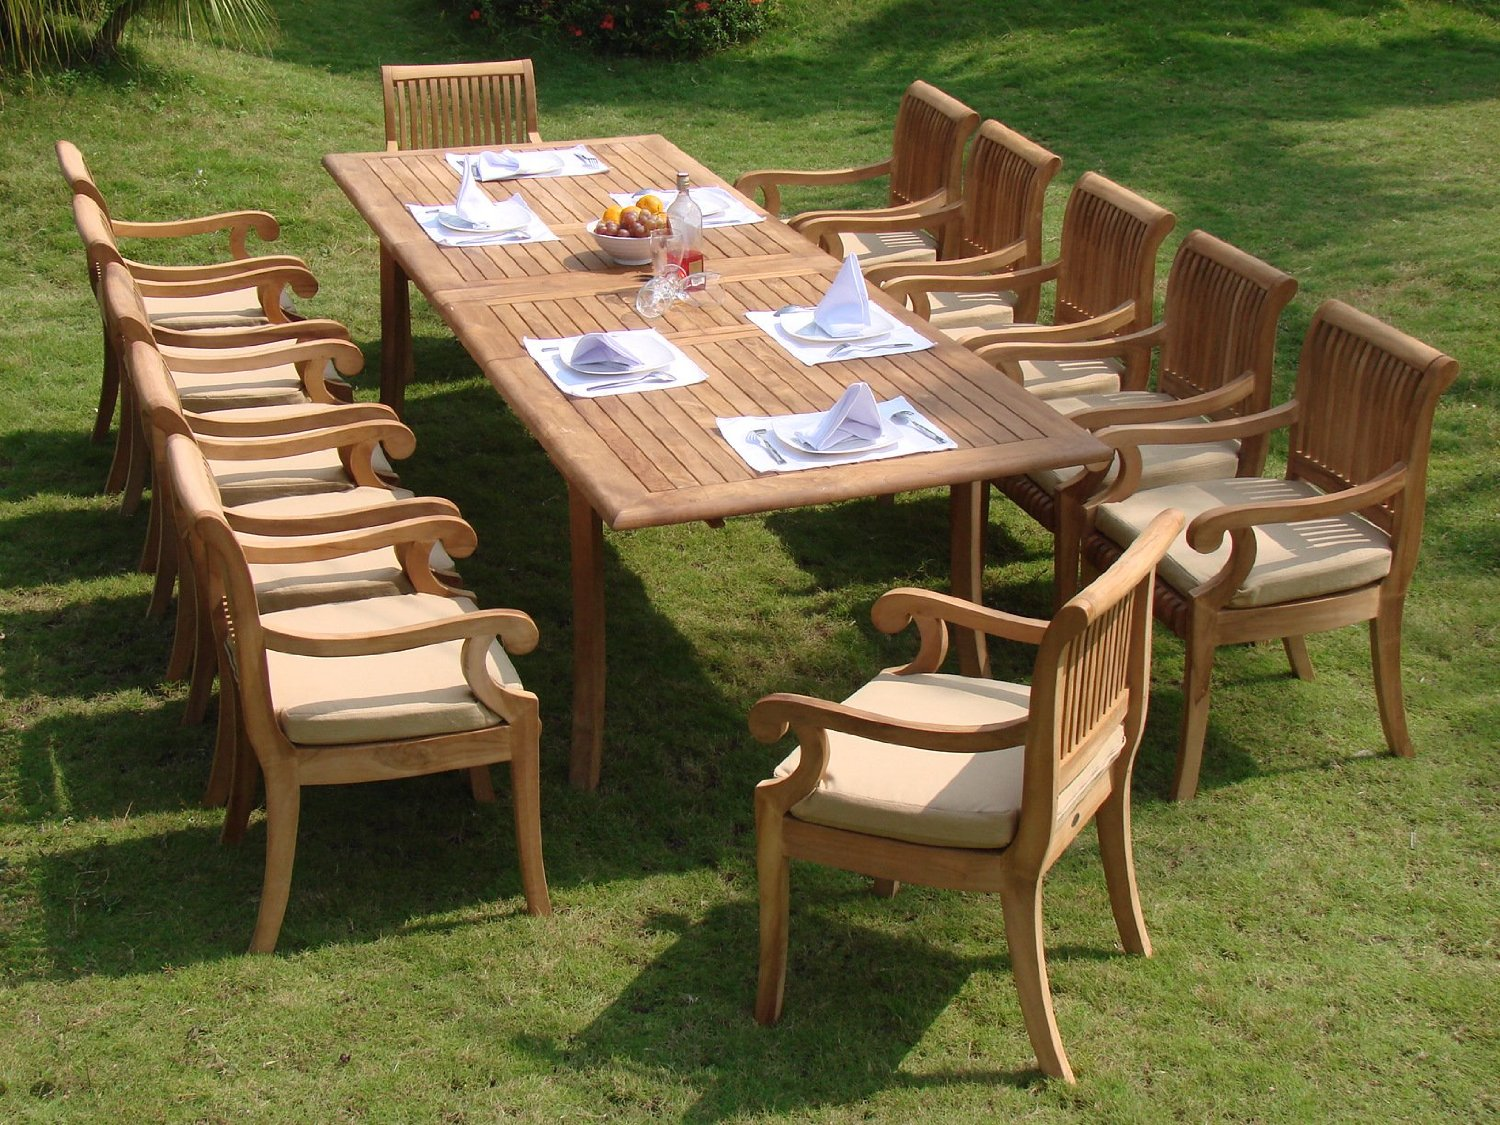 Beautiful teak patio furniture 13 piece luxurious grade-a teak dining set review ... bxkmieh